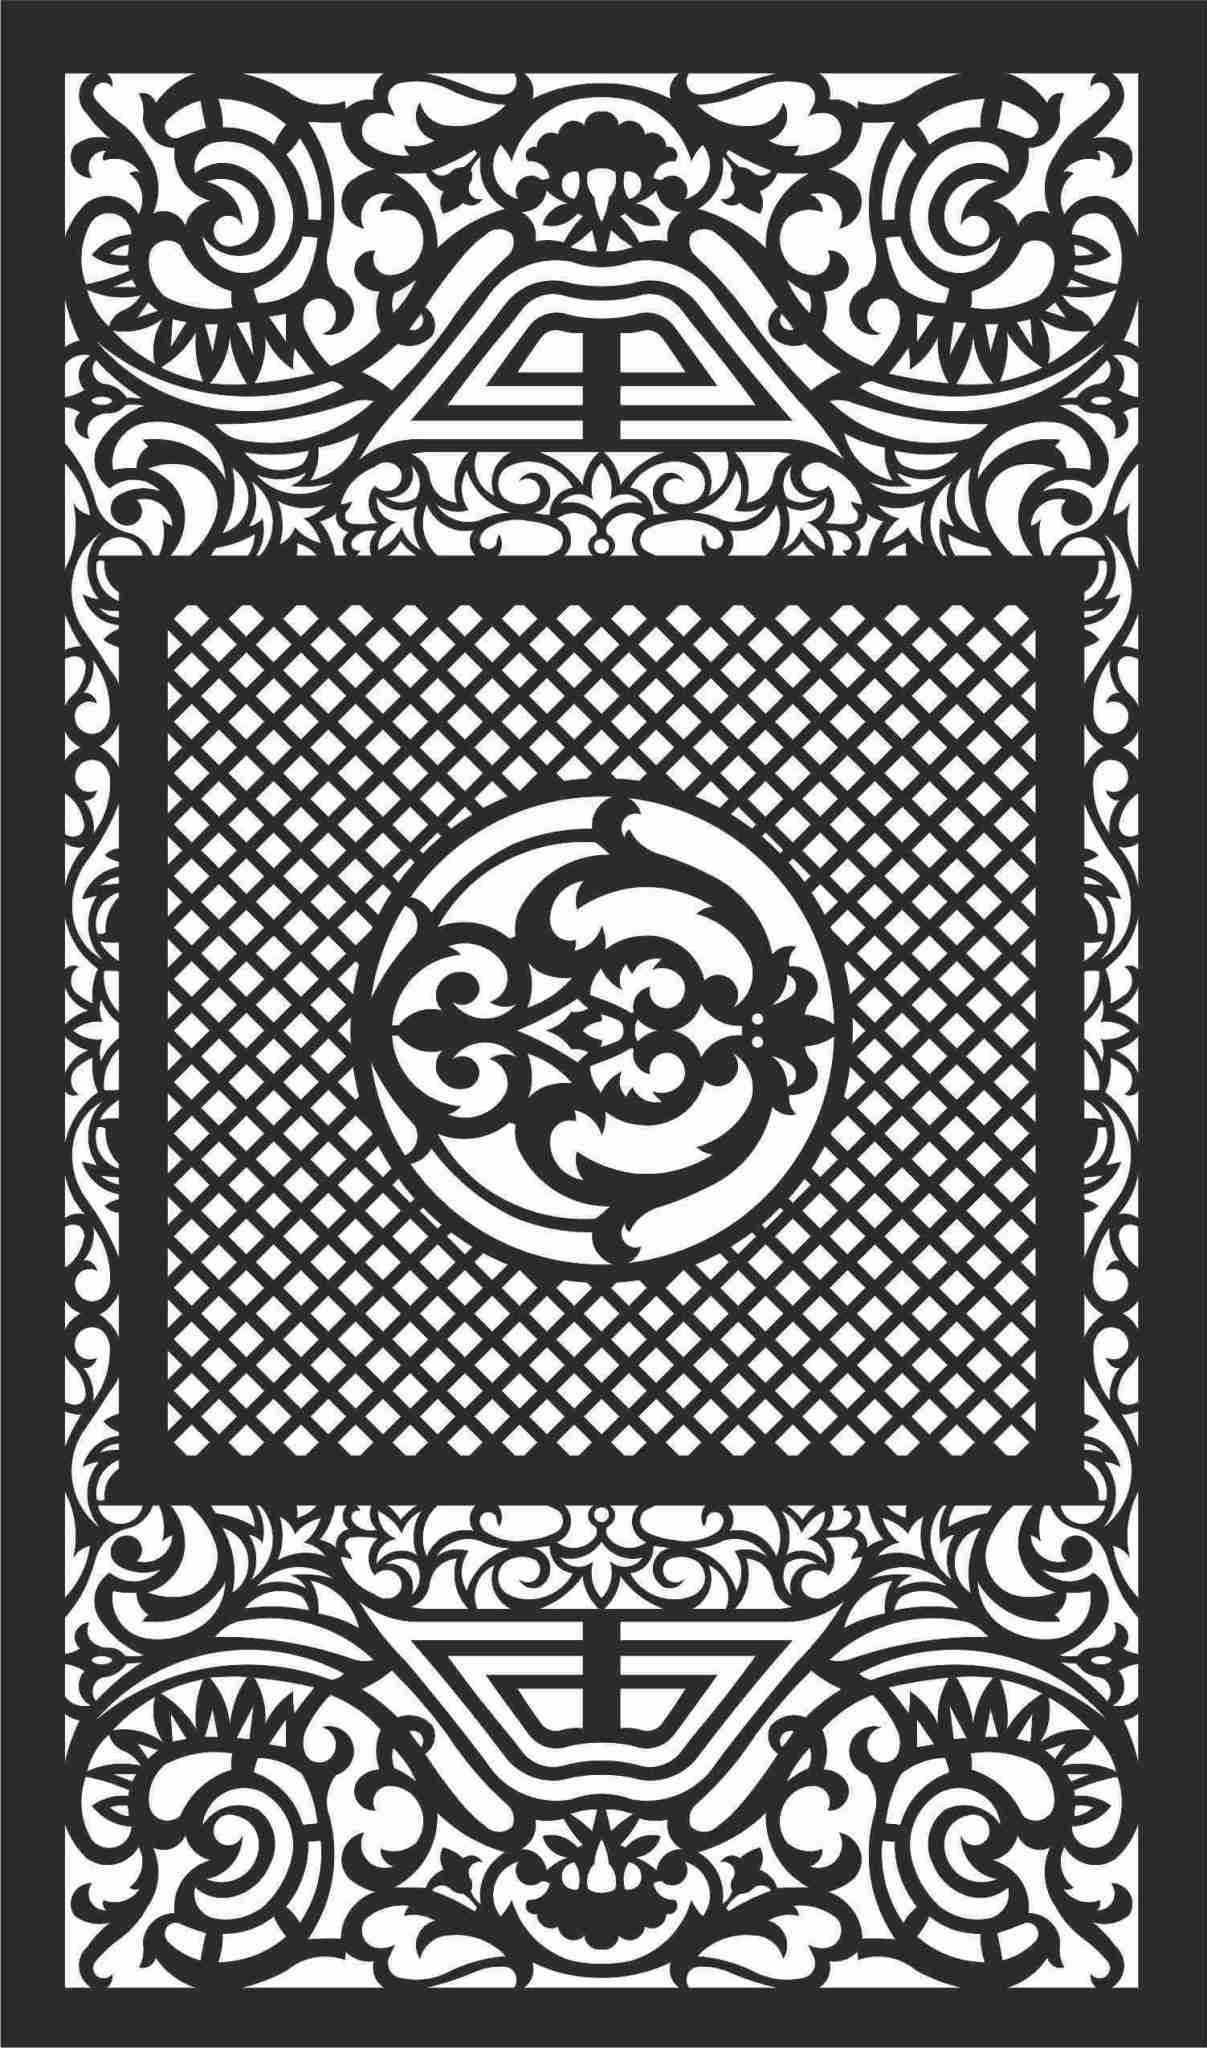 Decorative Screen Patterns For Laser Cutting 103 Free DXF File